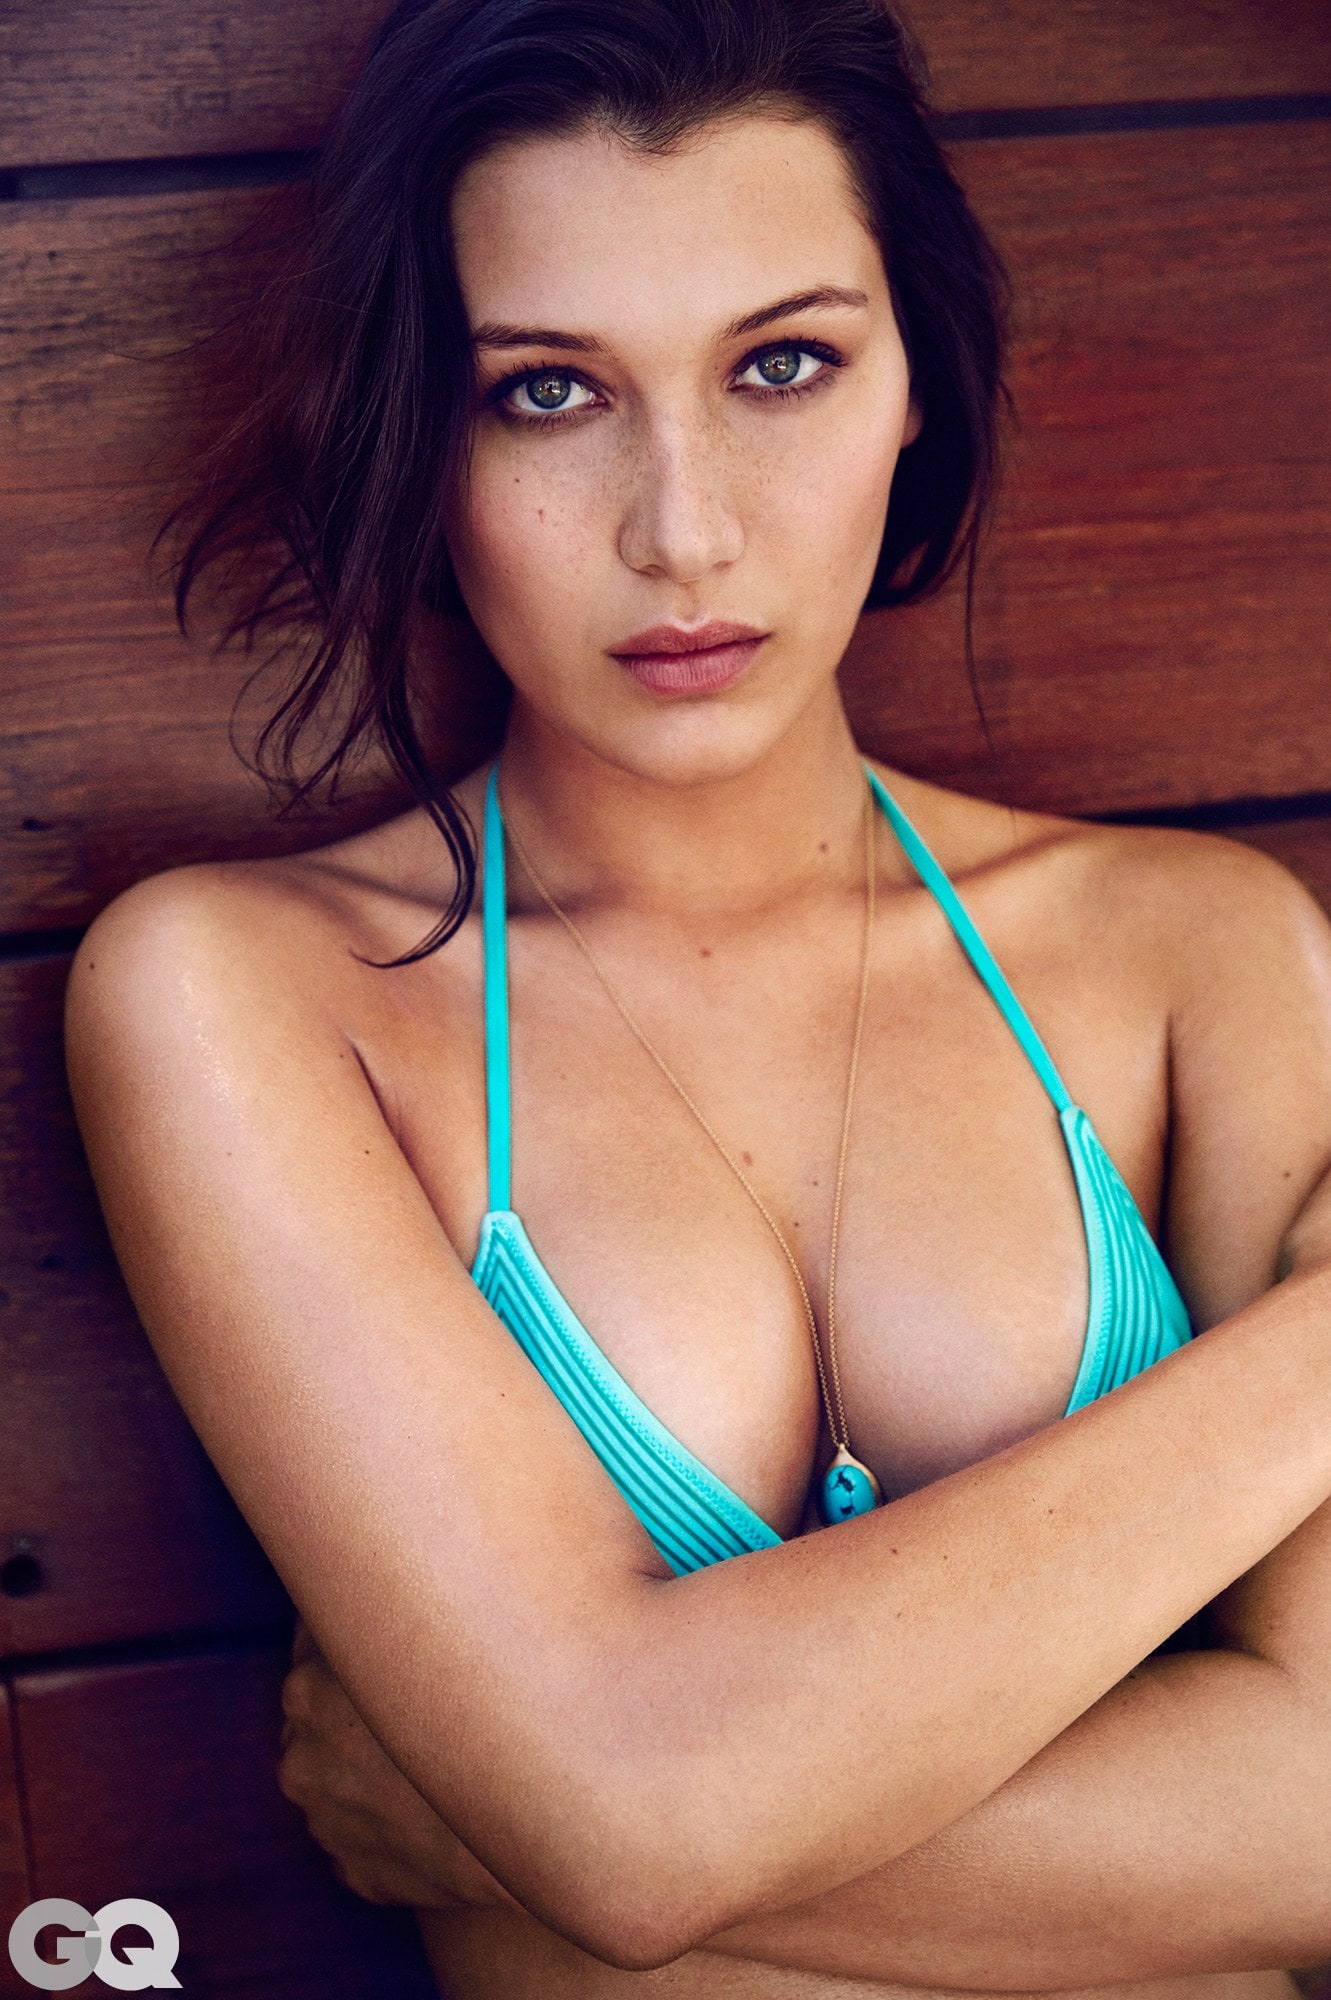 bella hadid cleavagers awesome pic